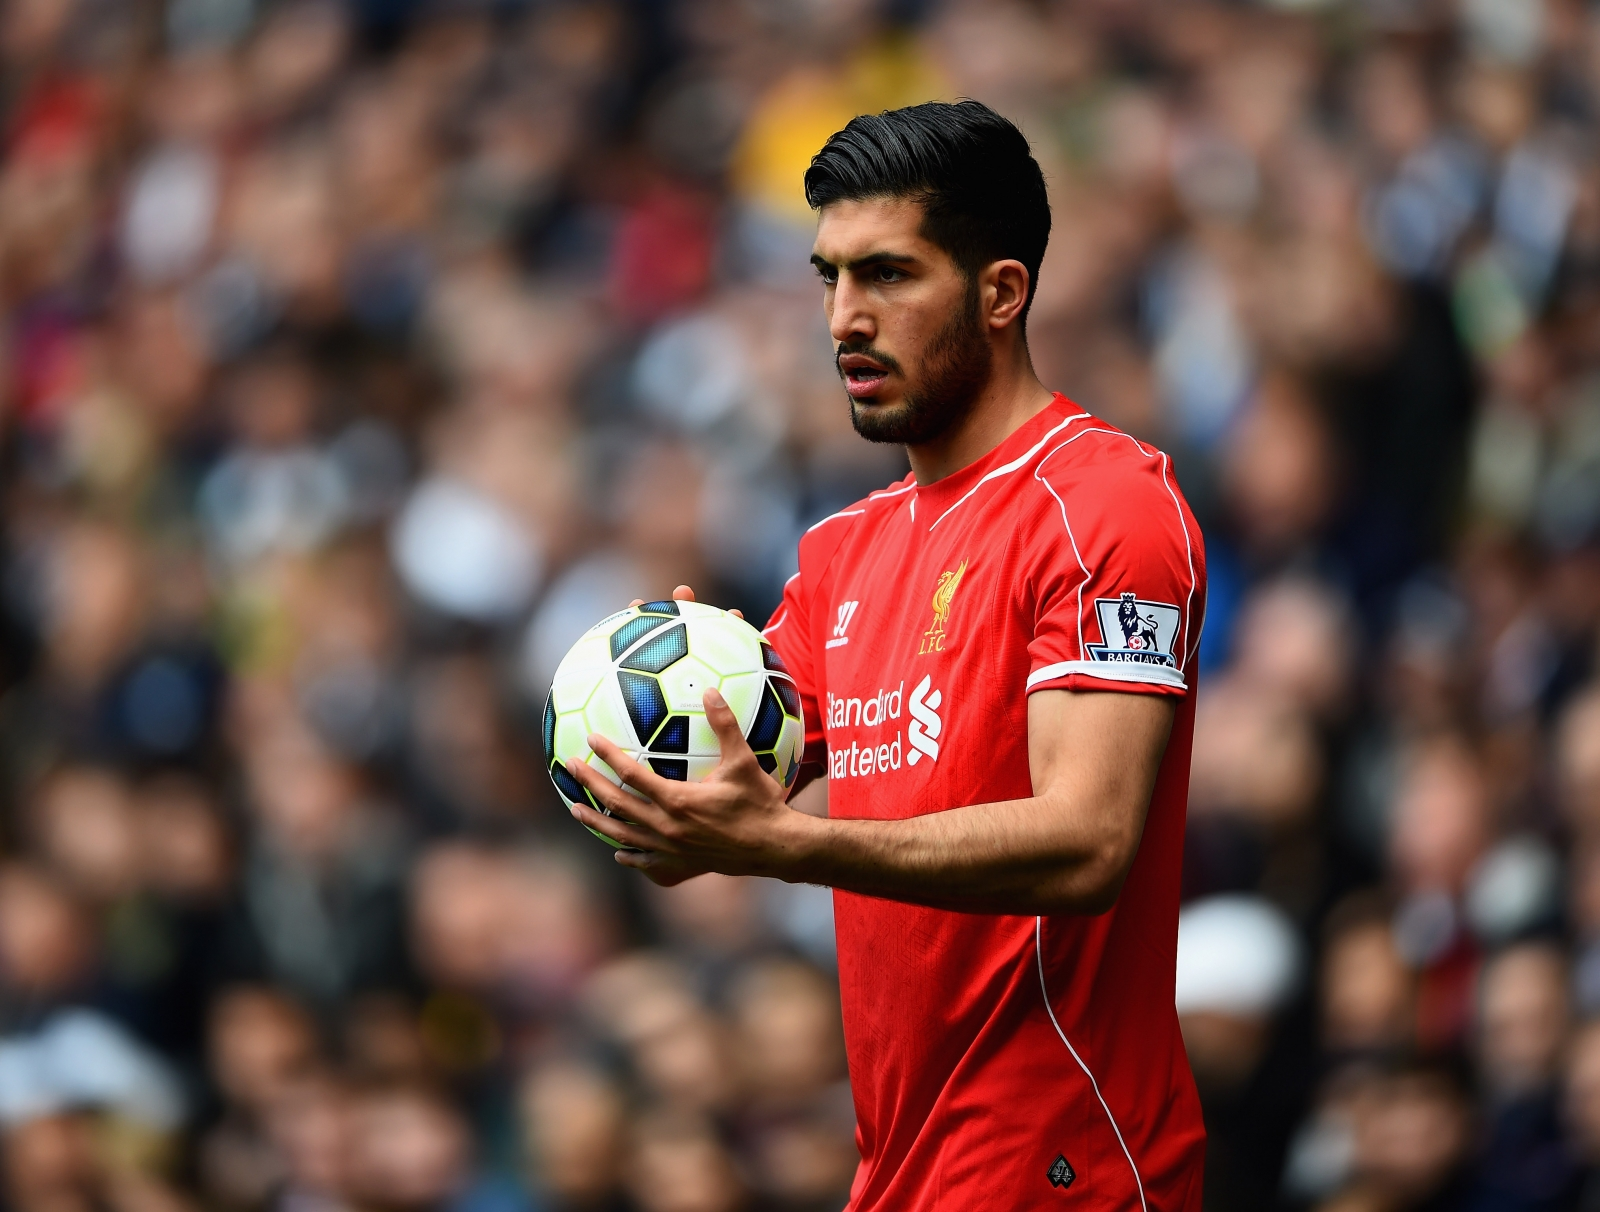 Liverpool Emre Can